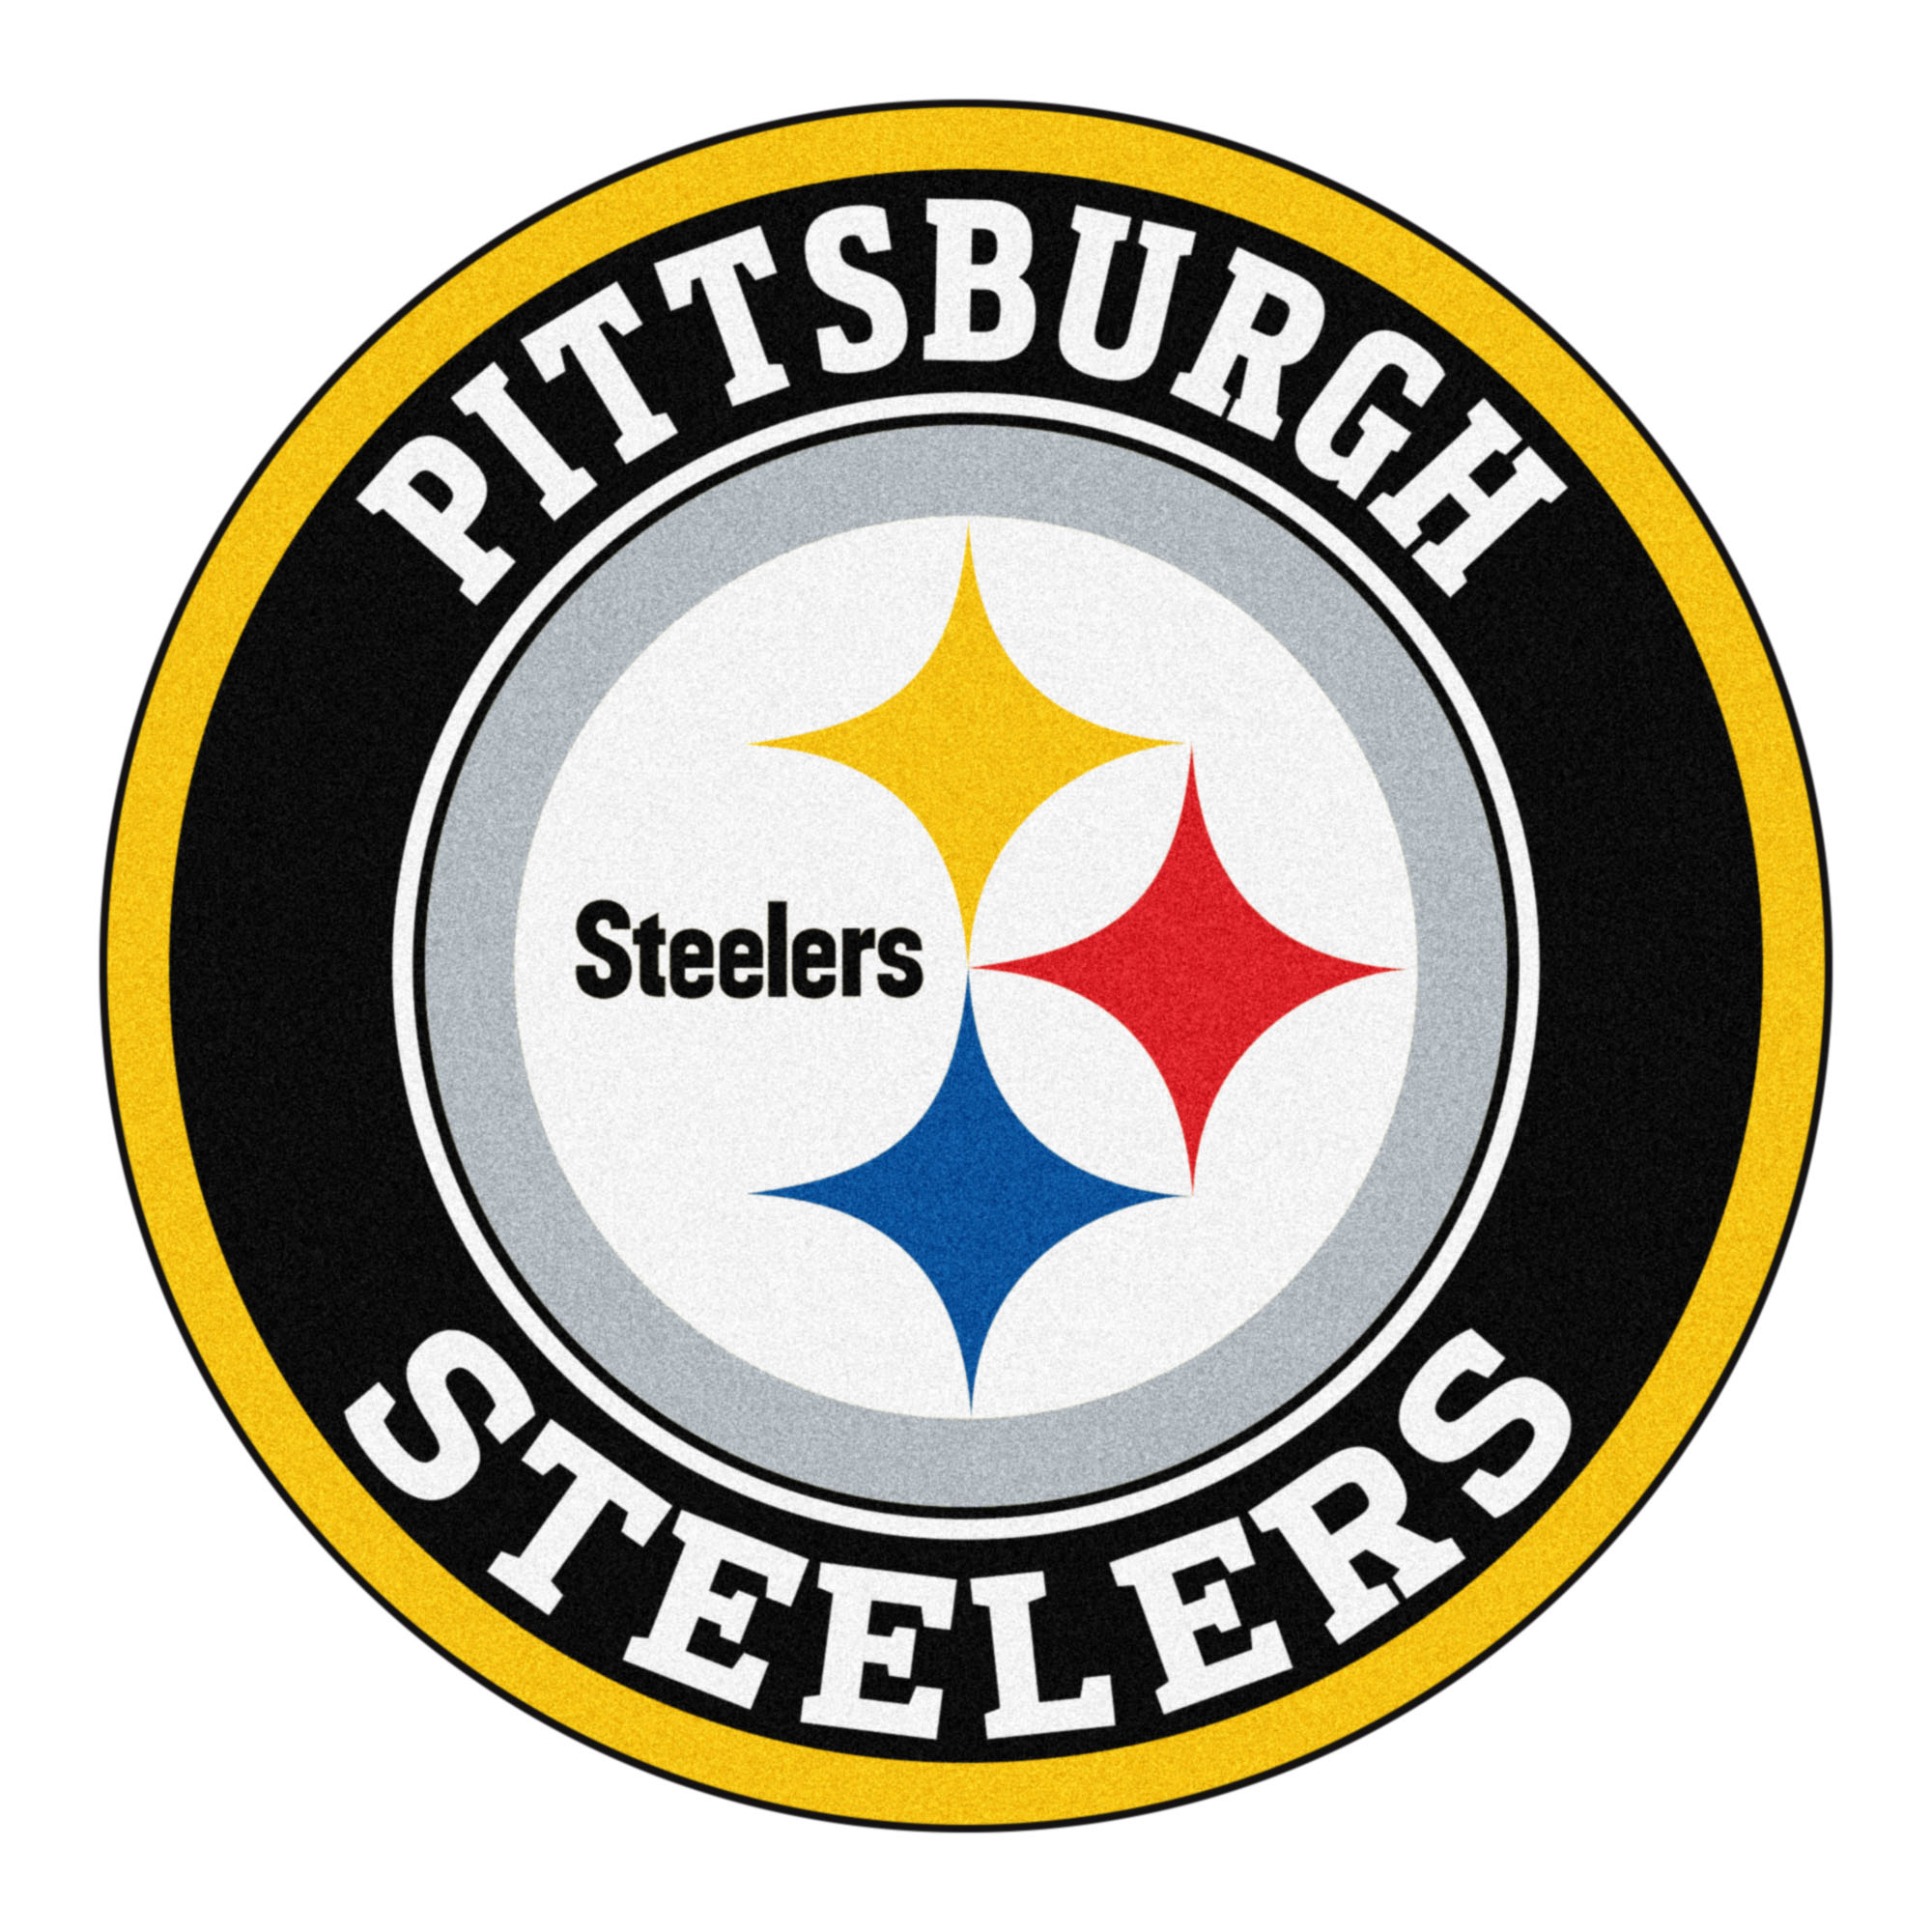 steelers drawing at getdrawings com free for personal use steelers rh getdrawings com steelers logos free steelers logos through years